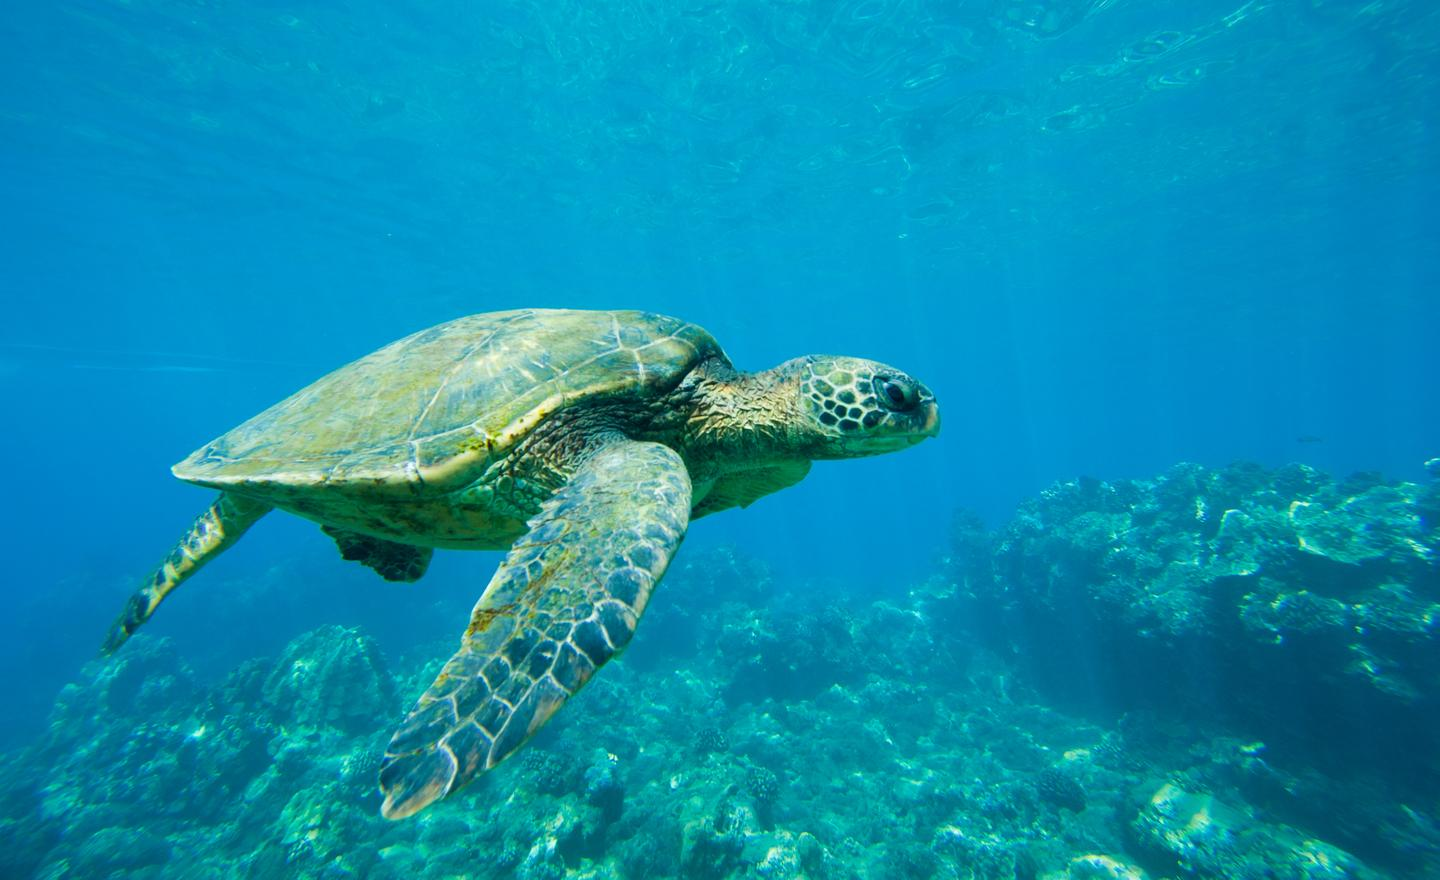 A new study has uncovered some of the sensory mechanism that can drive sea turtles to consume plastic waste